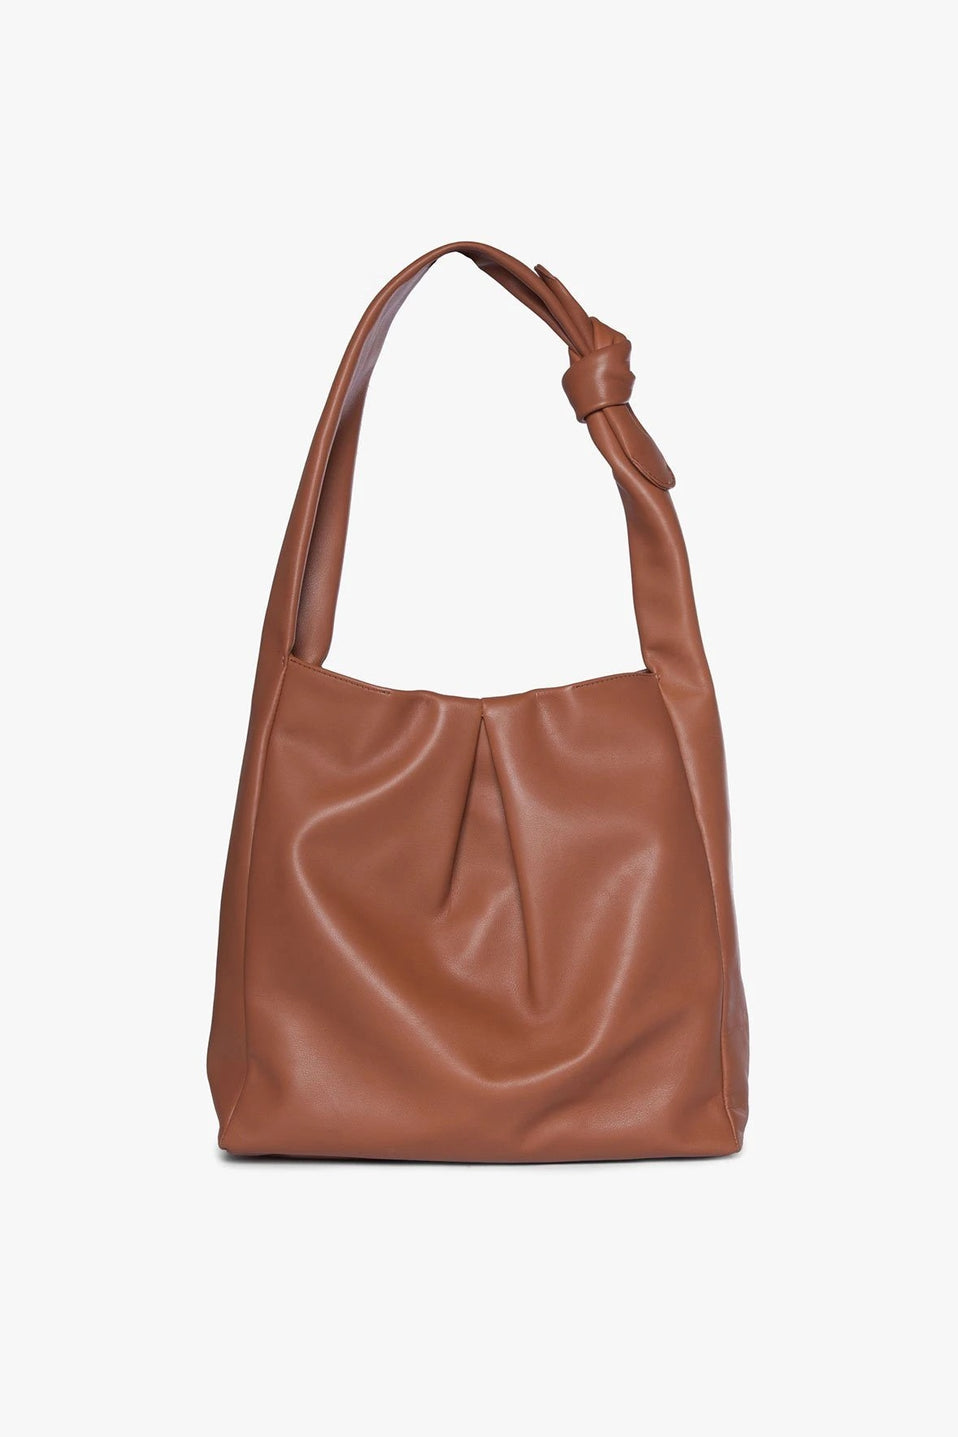 The Island Tote Bag in Tan